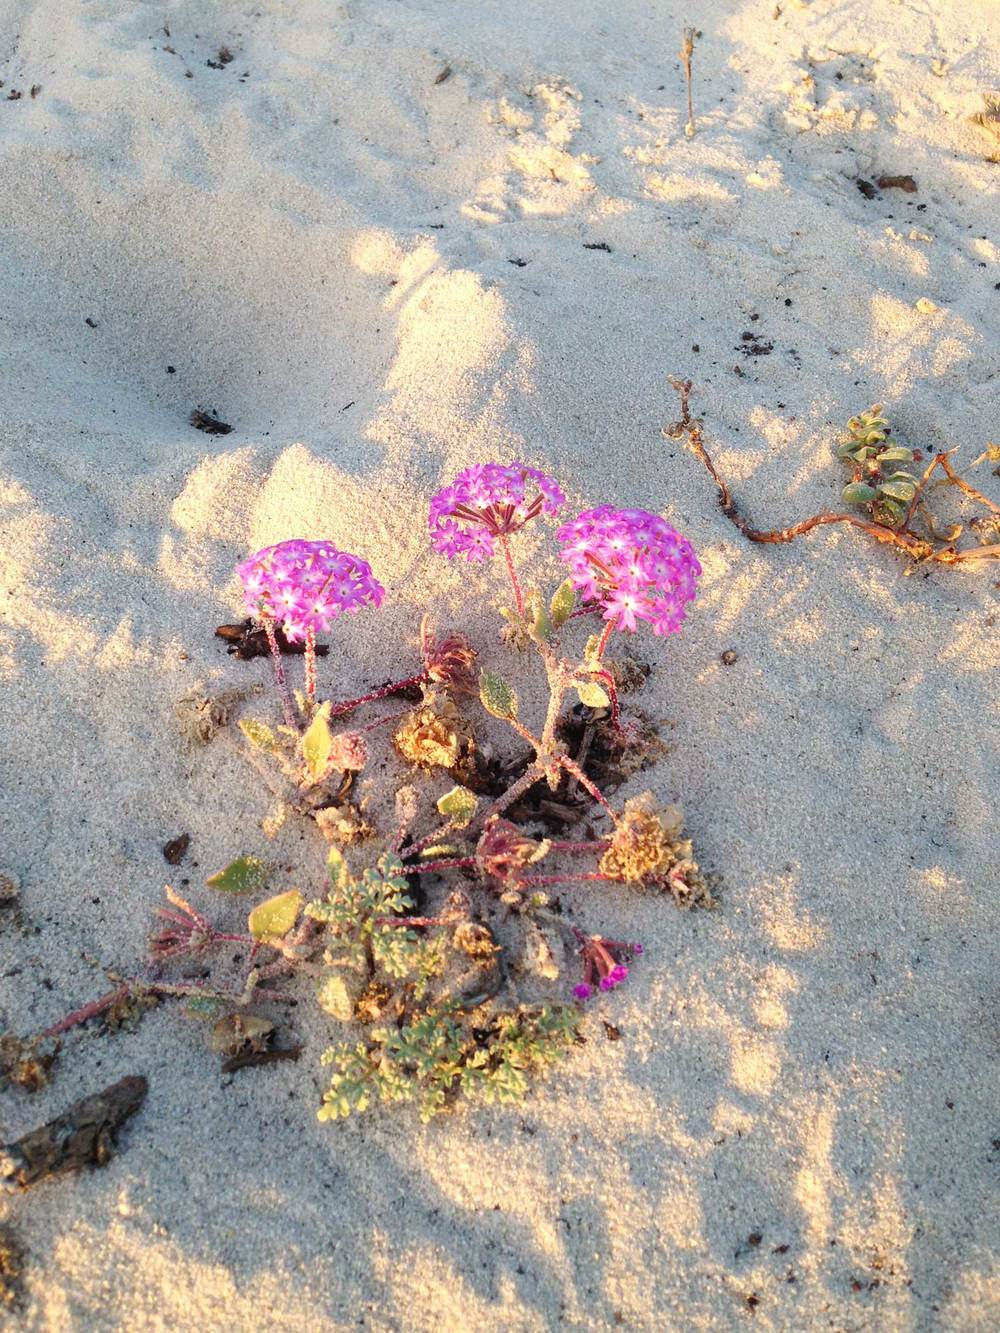 The dunes are home to a number of plants that thrive in the sandy environment. You can even take a self-guided audio tour.